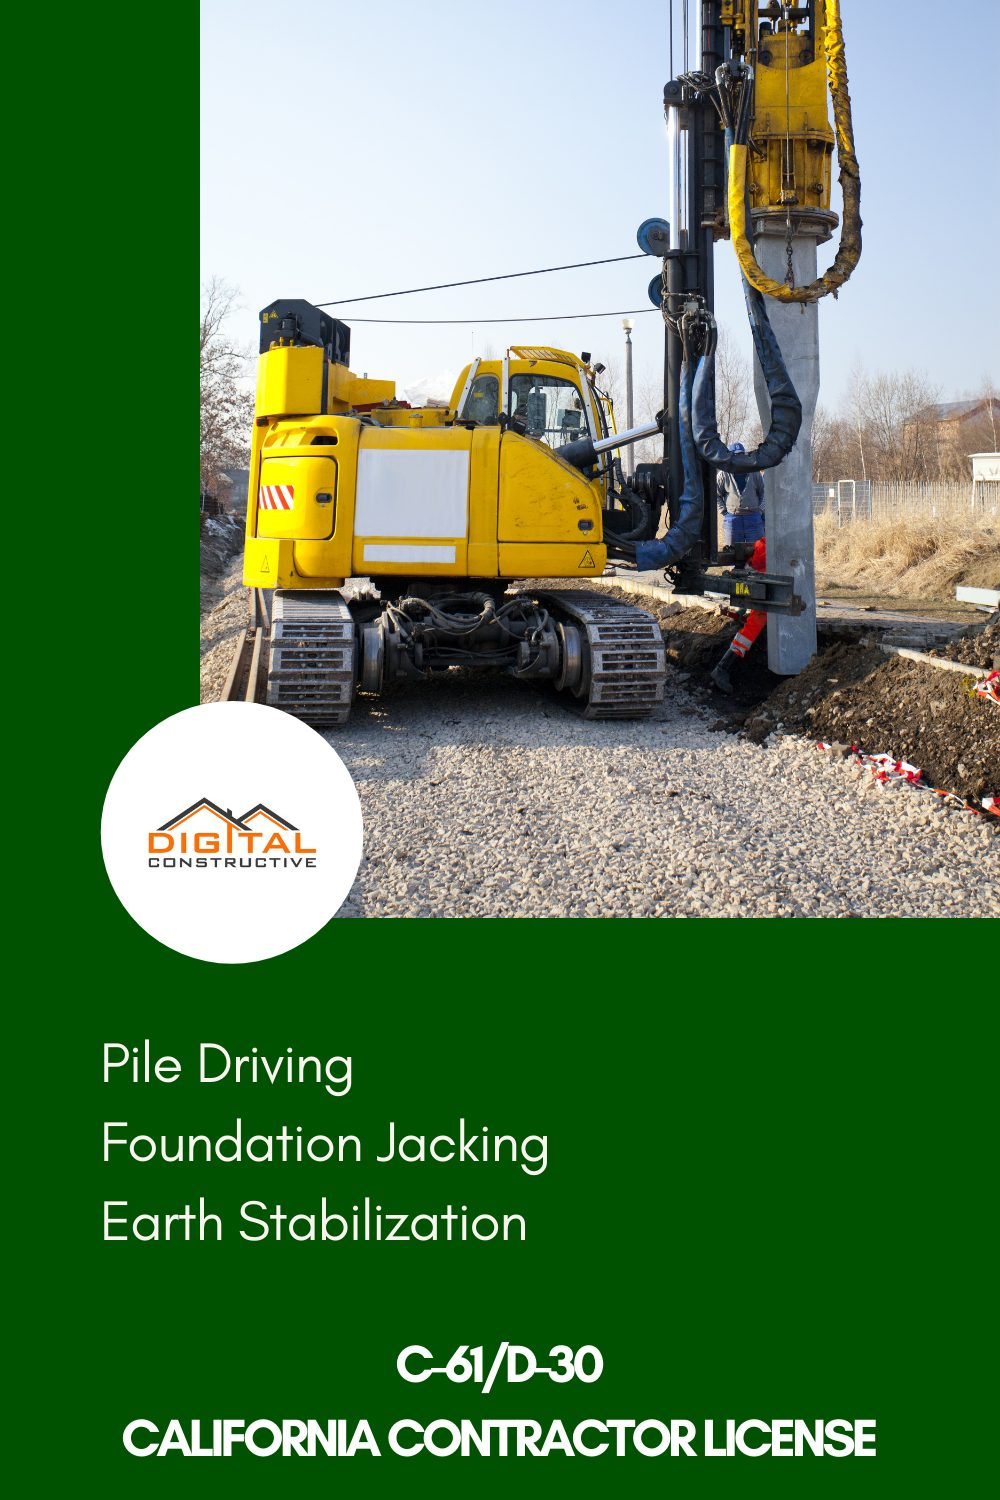 what can you do with a C-61 license for pile driving and foundation jacking in California